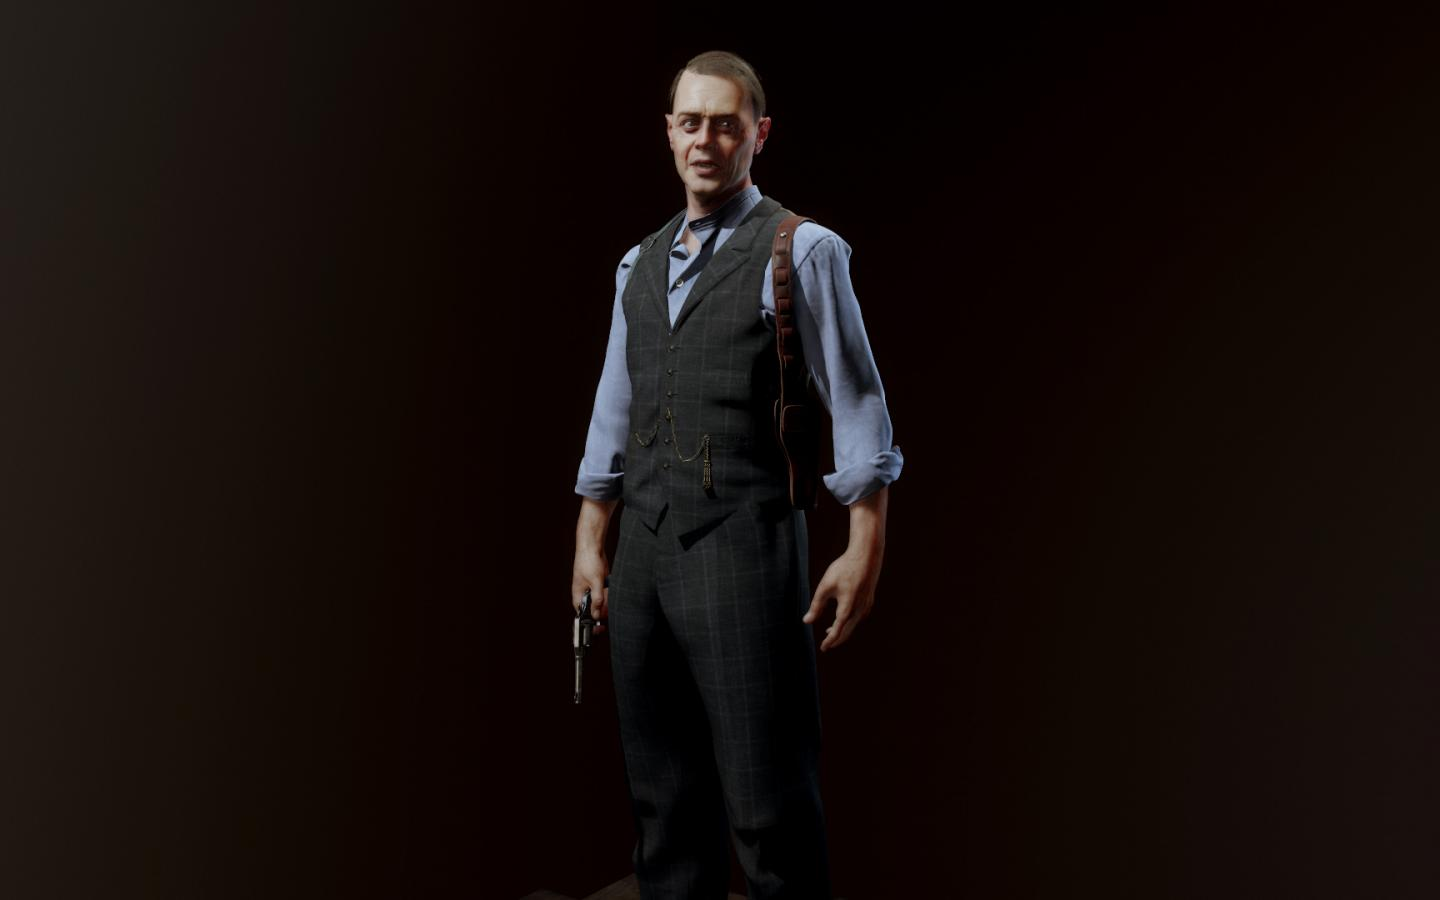 1440x900 - Nucky Thompson Wallpapers 24